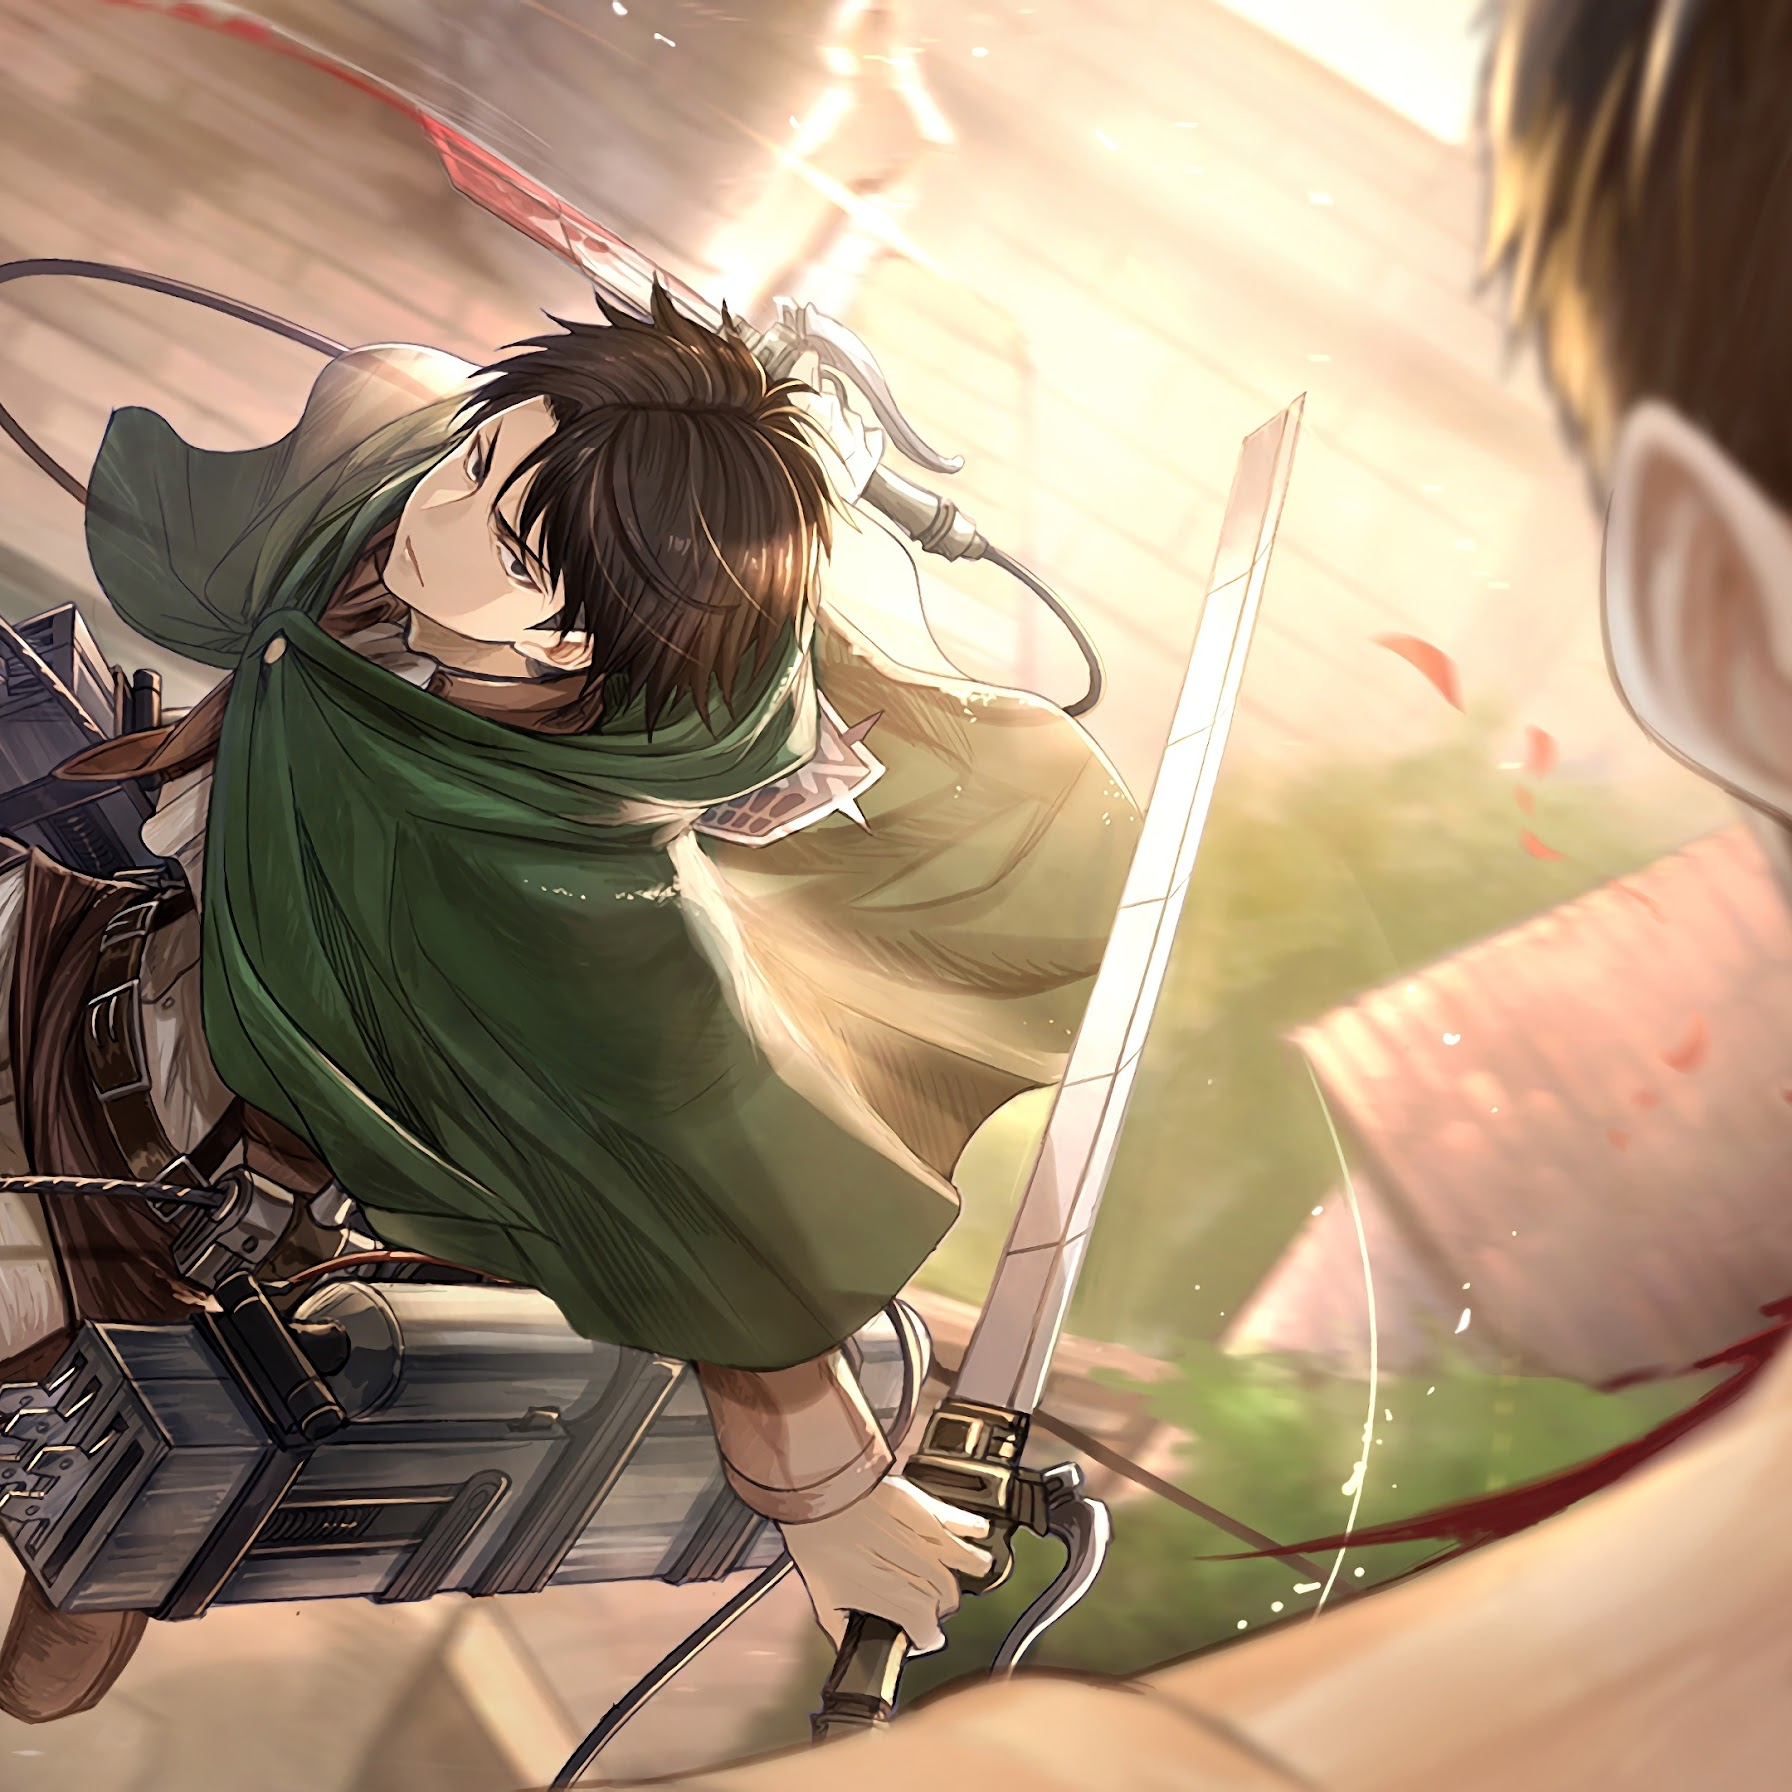 This article explains how to set live wallpapers on an iphone. Levi, Attack on Titan, 4K, #1 Wallpaper